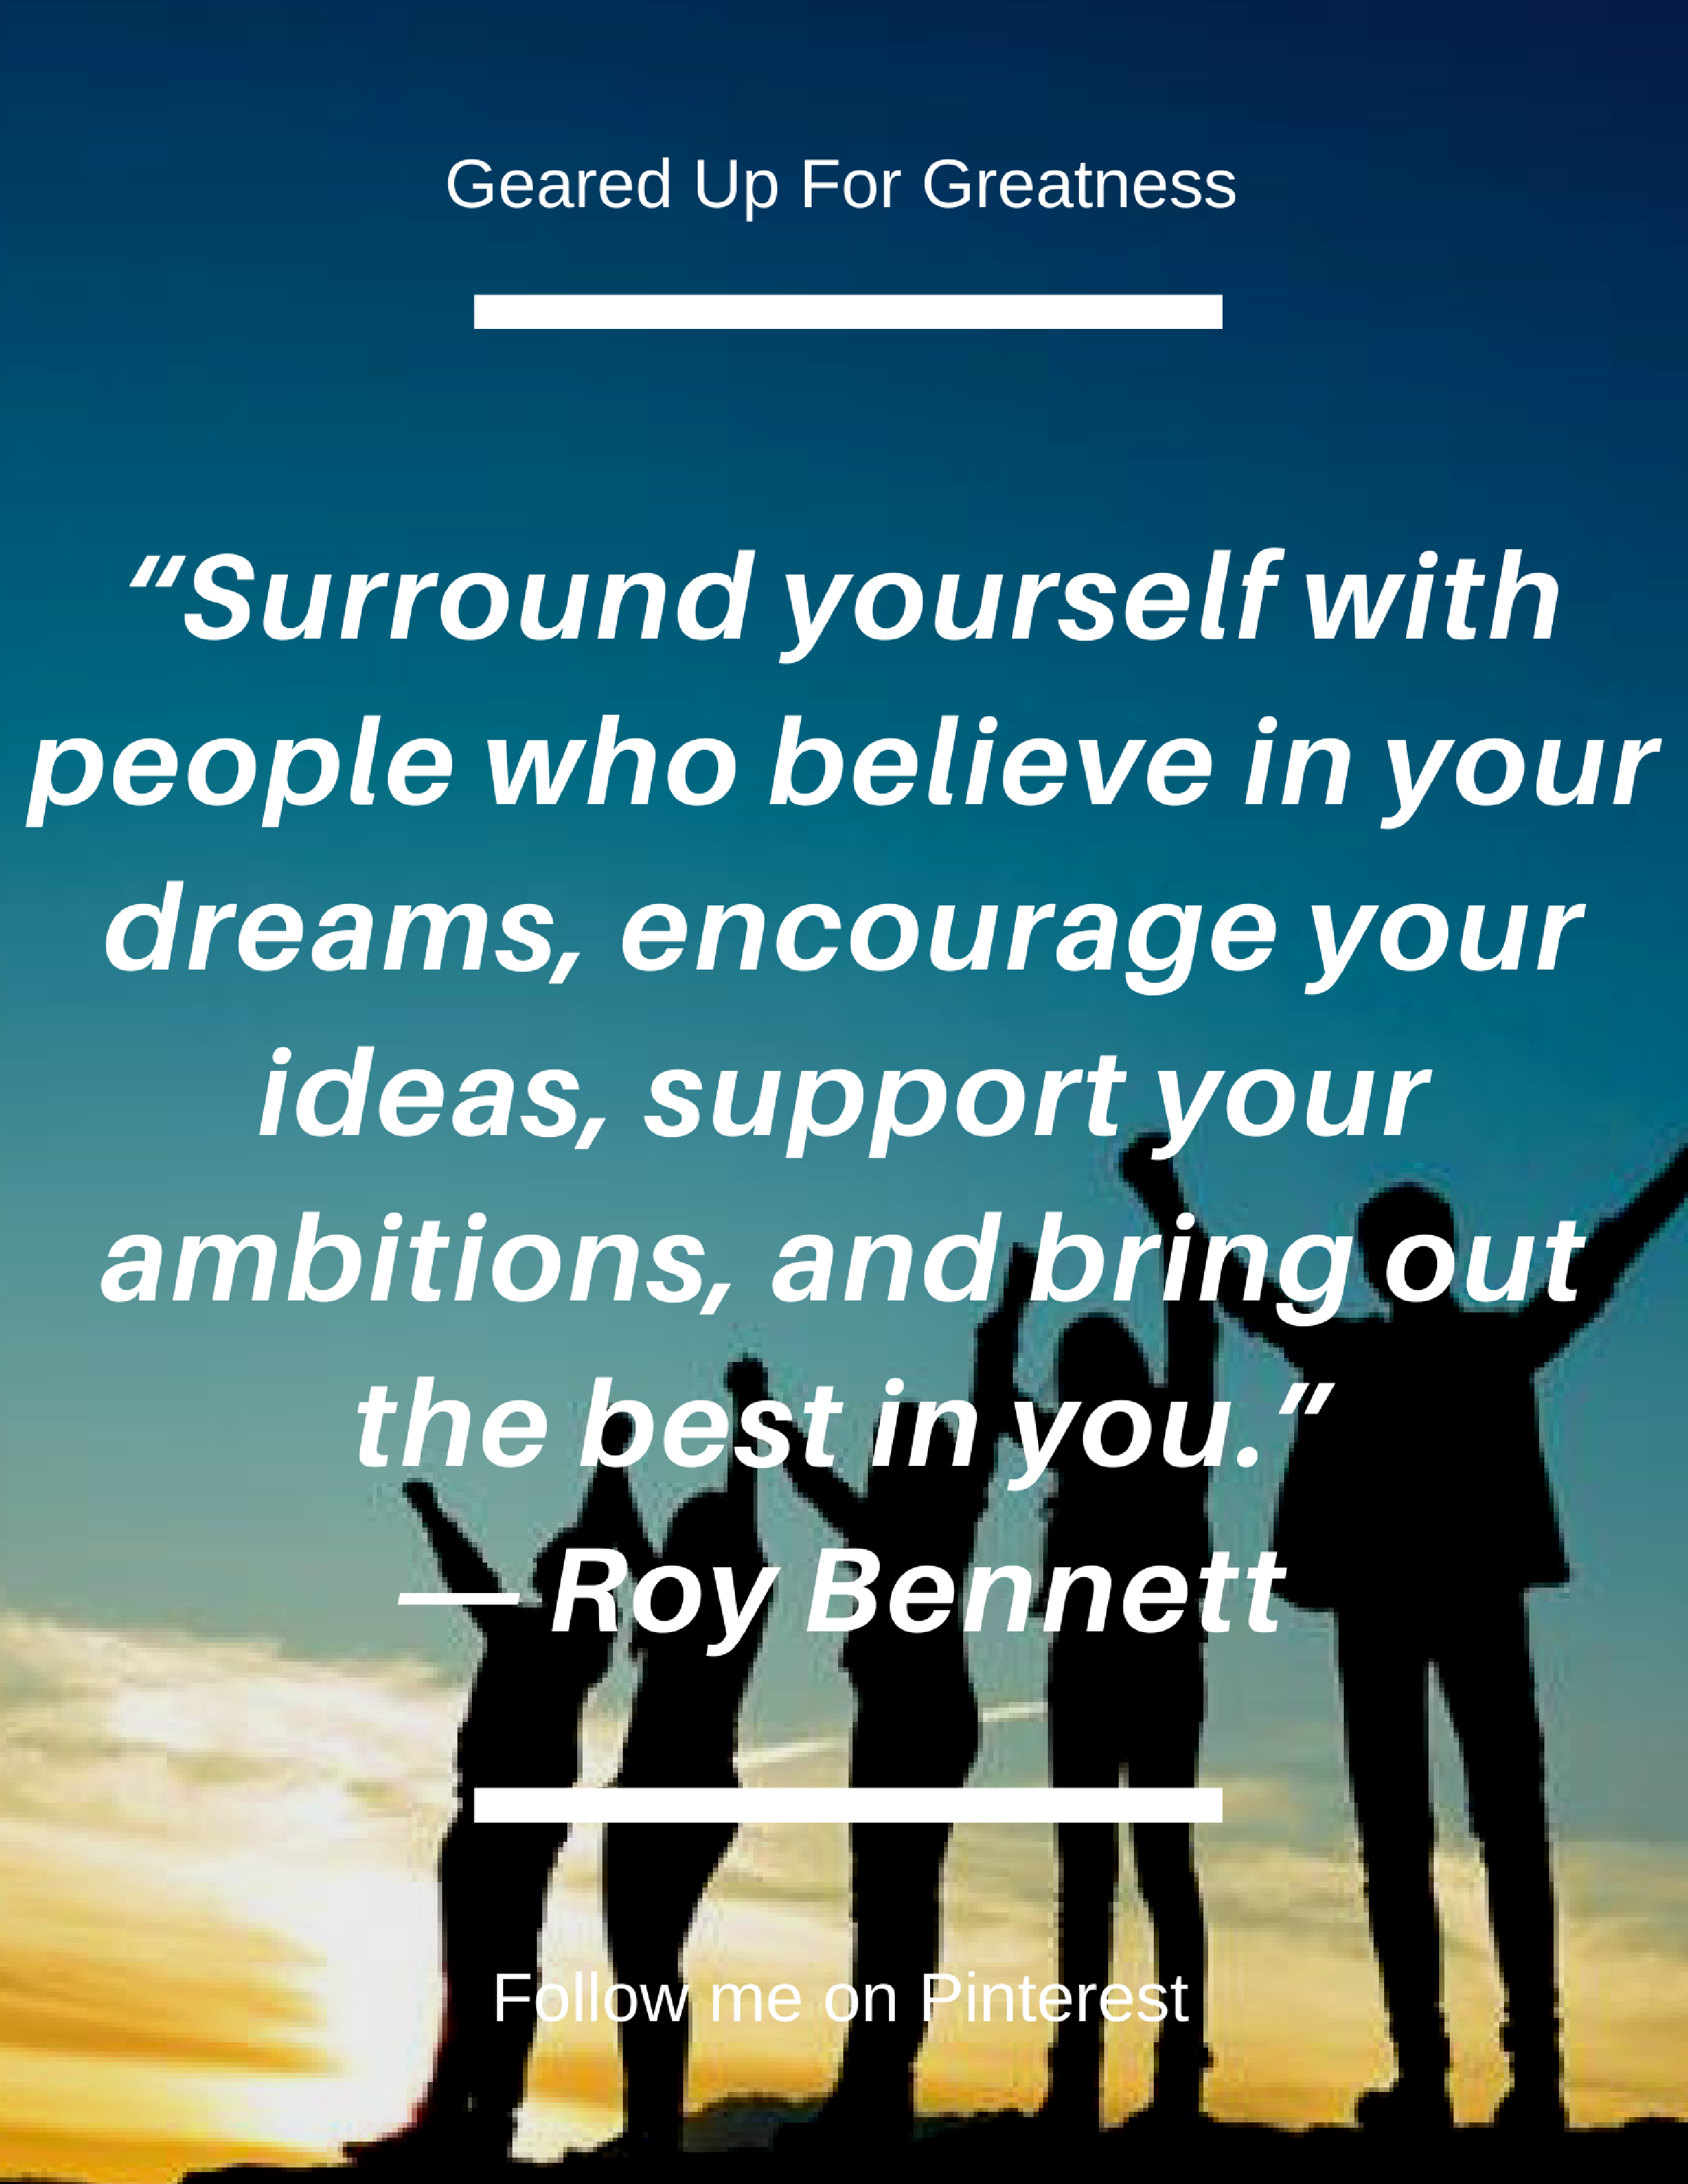 Your Friends Can Help You Or Hurt So Surround Yourself With People Who Believe